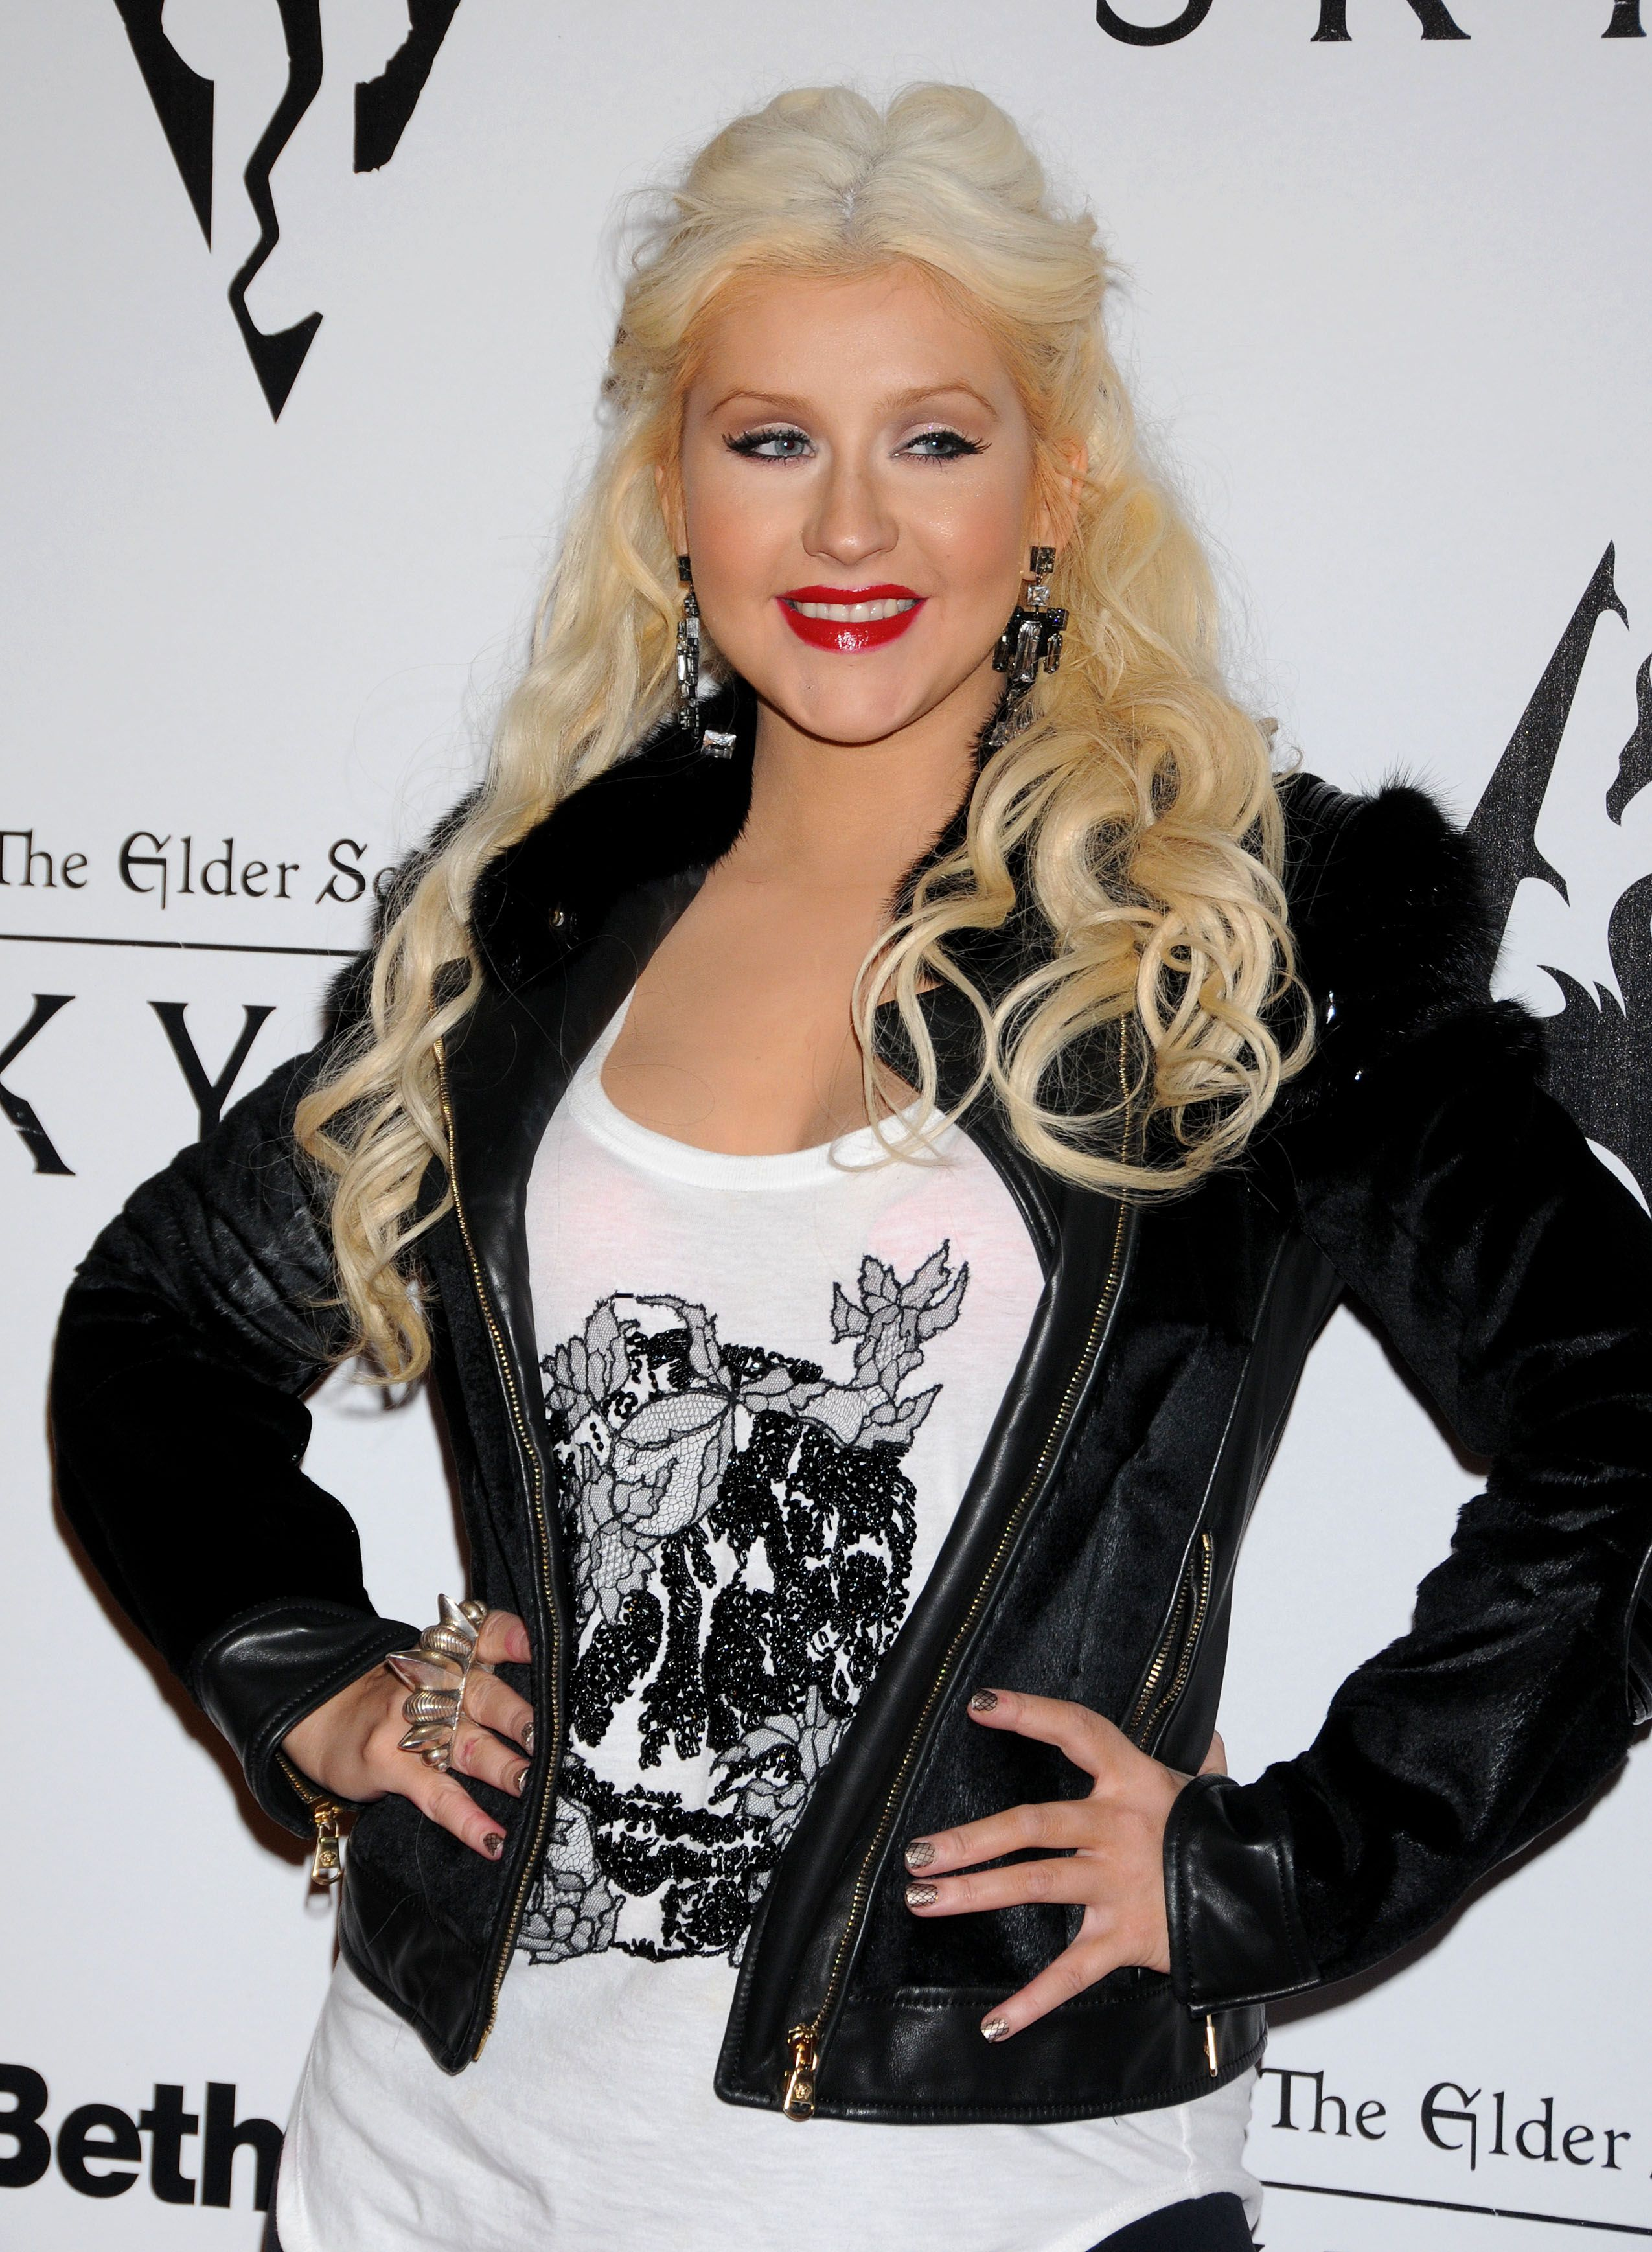 Christina Aguilera – Candids at The Elder Scrolls V party in LA-04